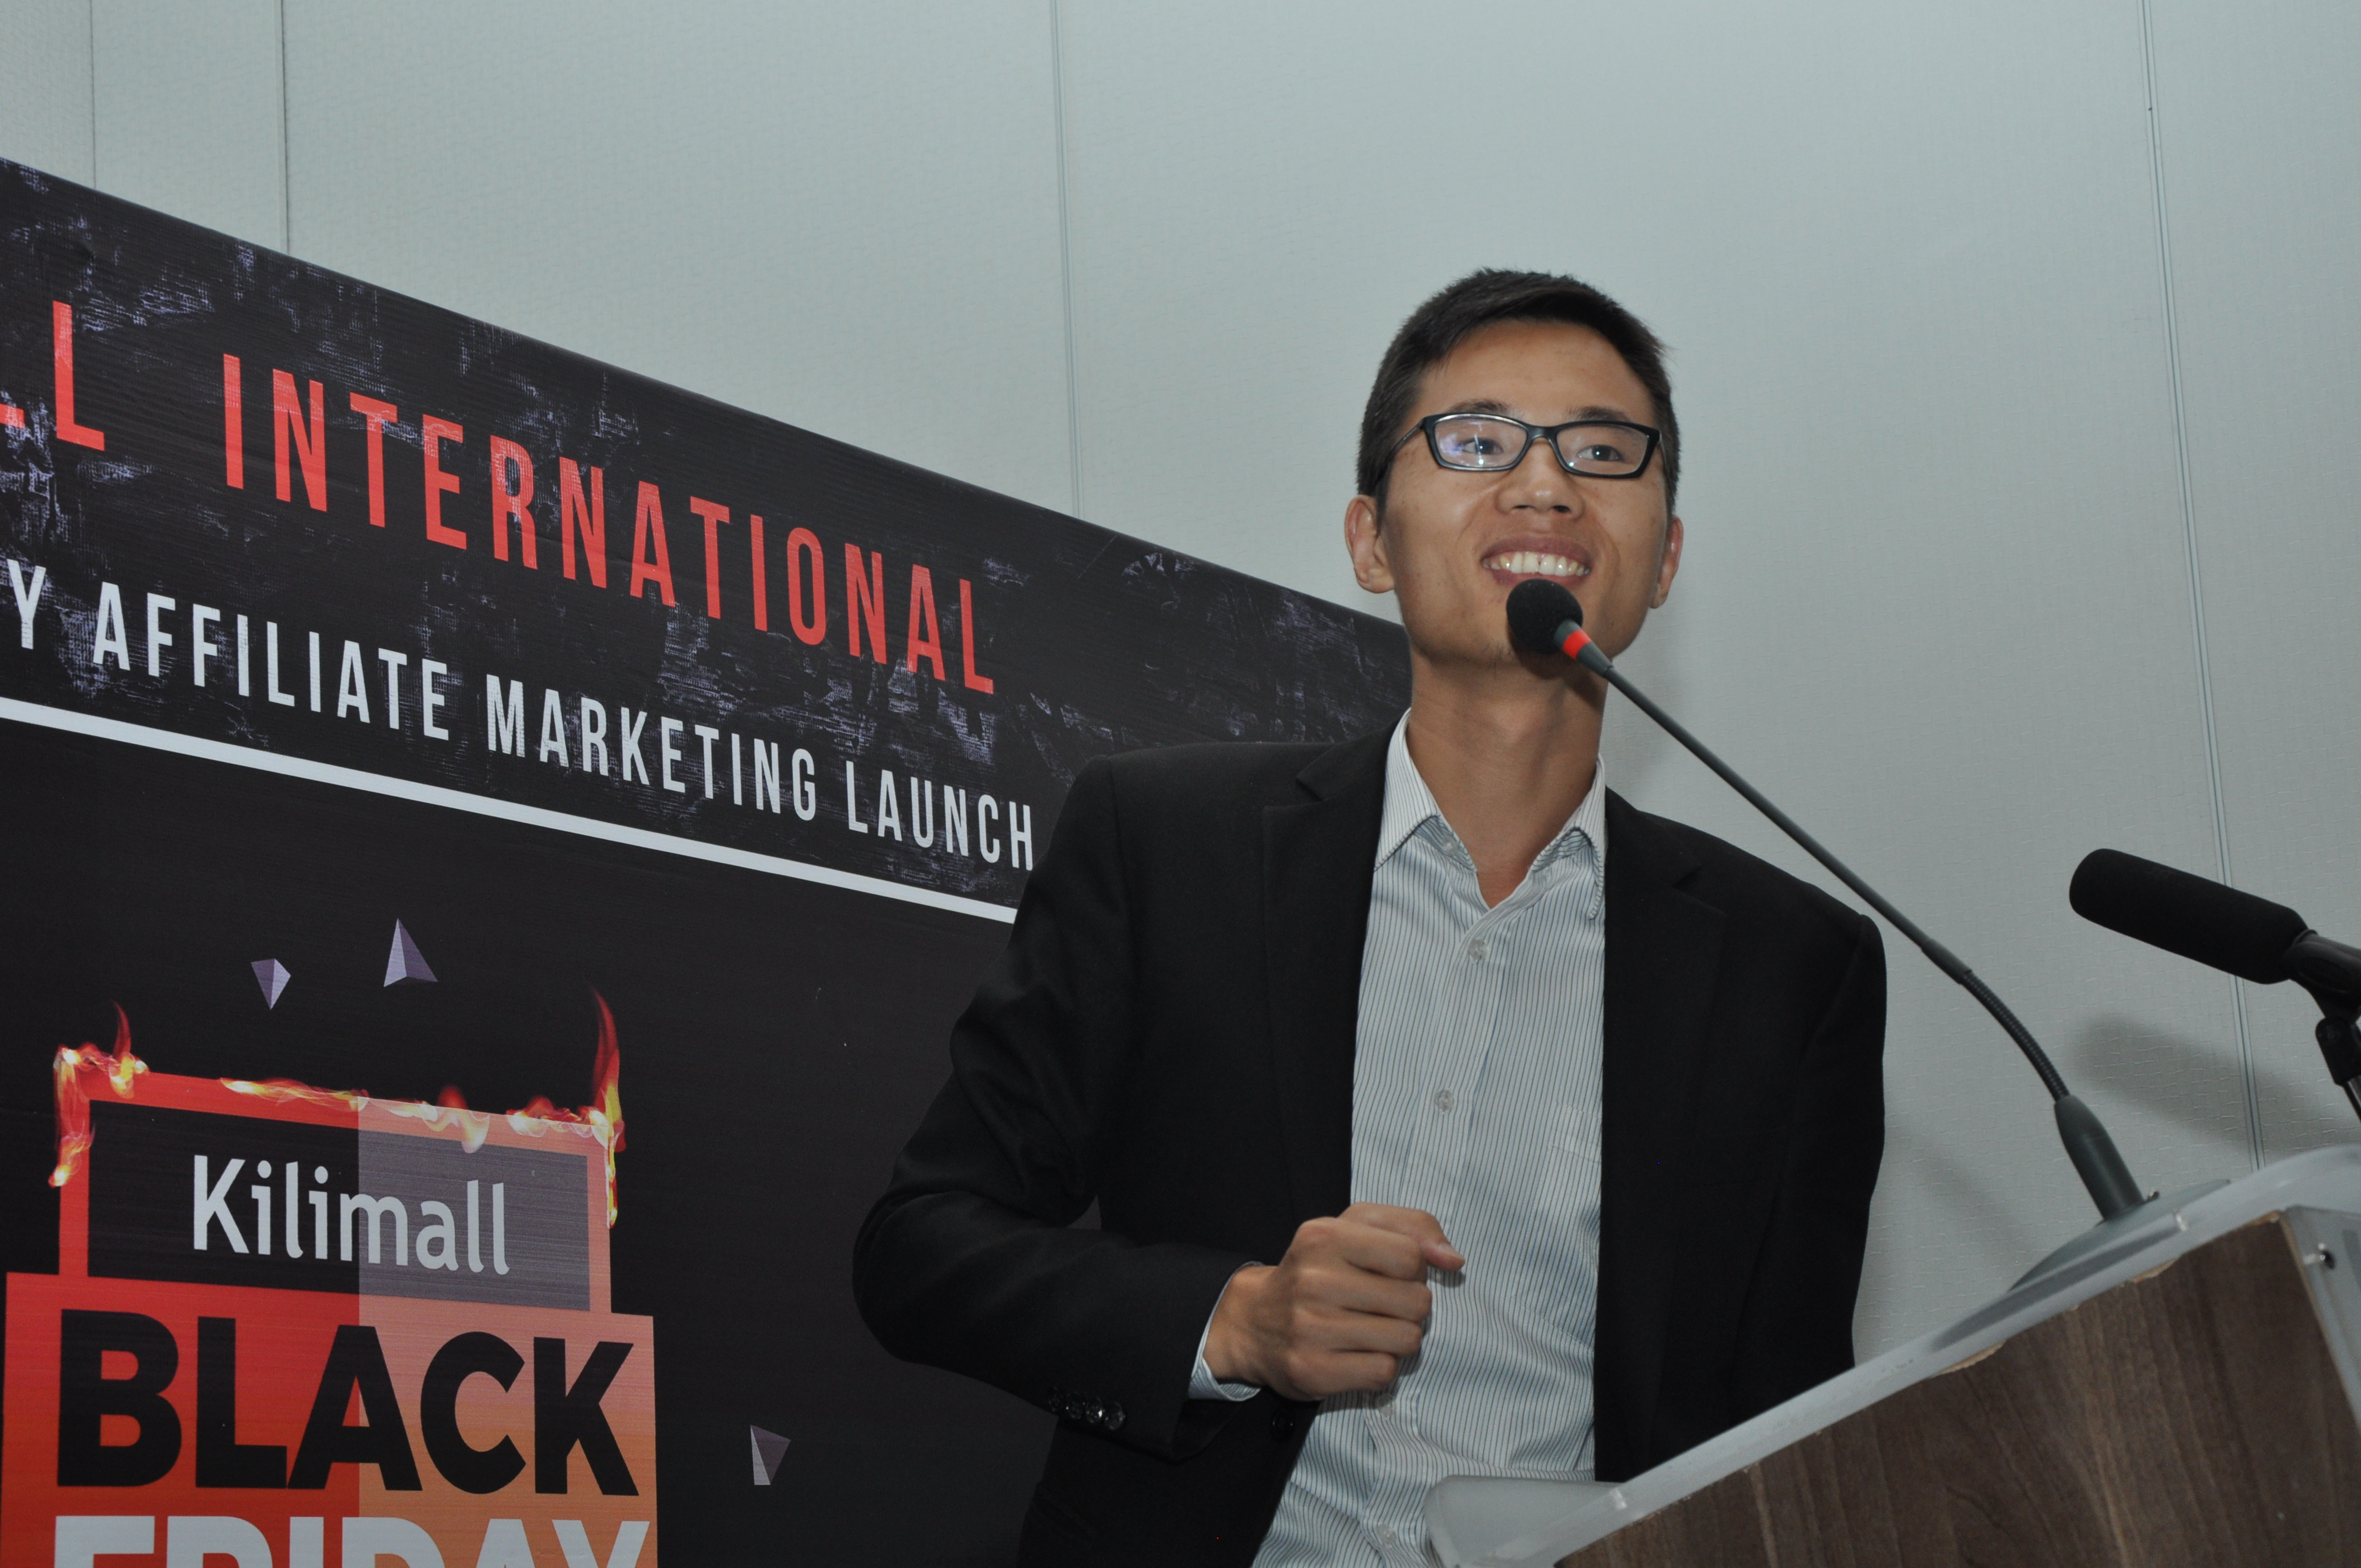 Kilimall-International-Managing-Director-Robin-Xie-speaks-during-the-launch-of-Kilimall-Black-Friday-and-affiliate-marketing-programme.jpg